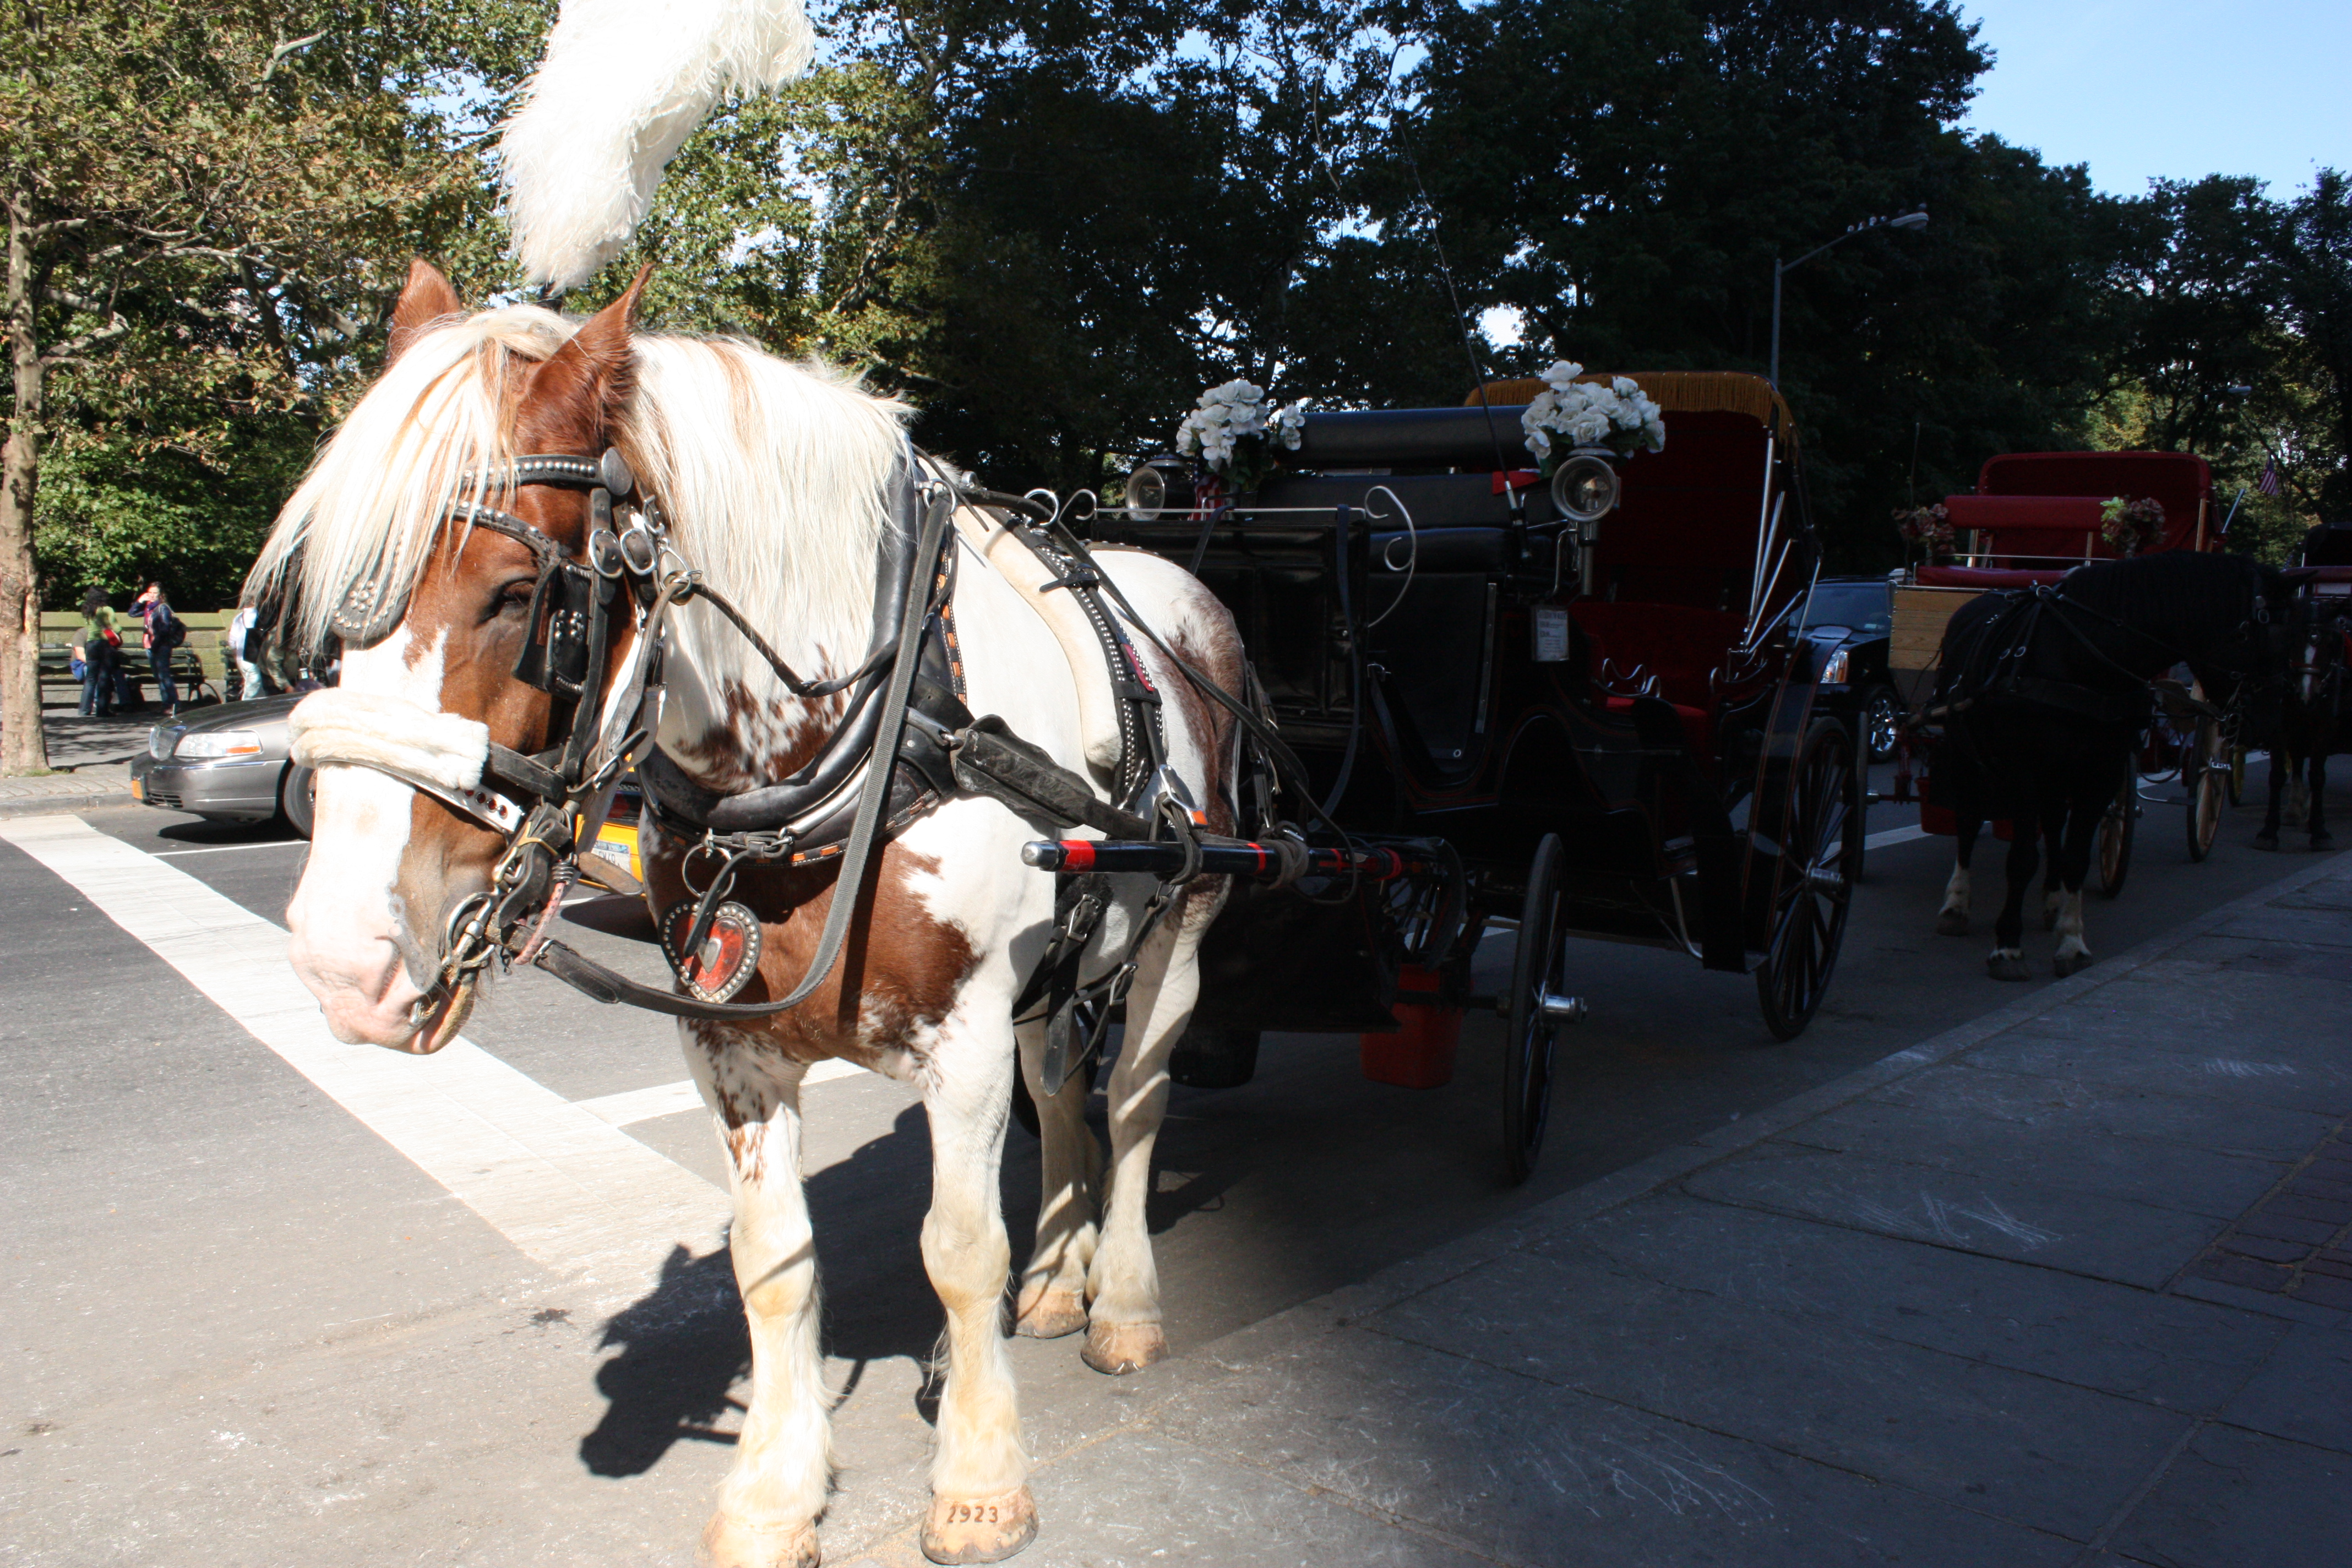 Carriage horse in the sun